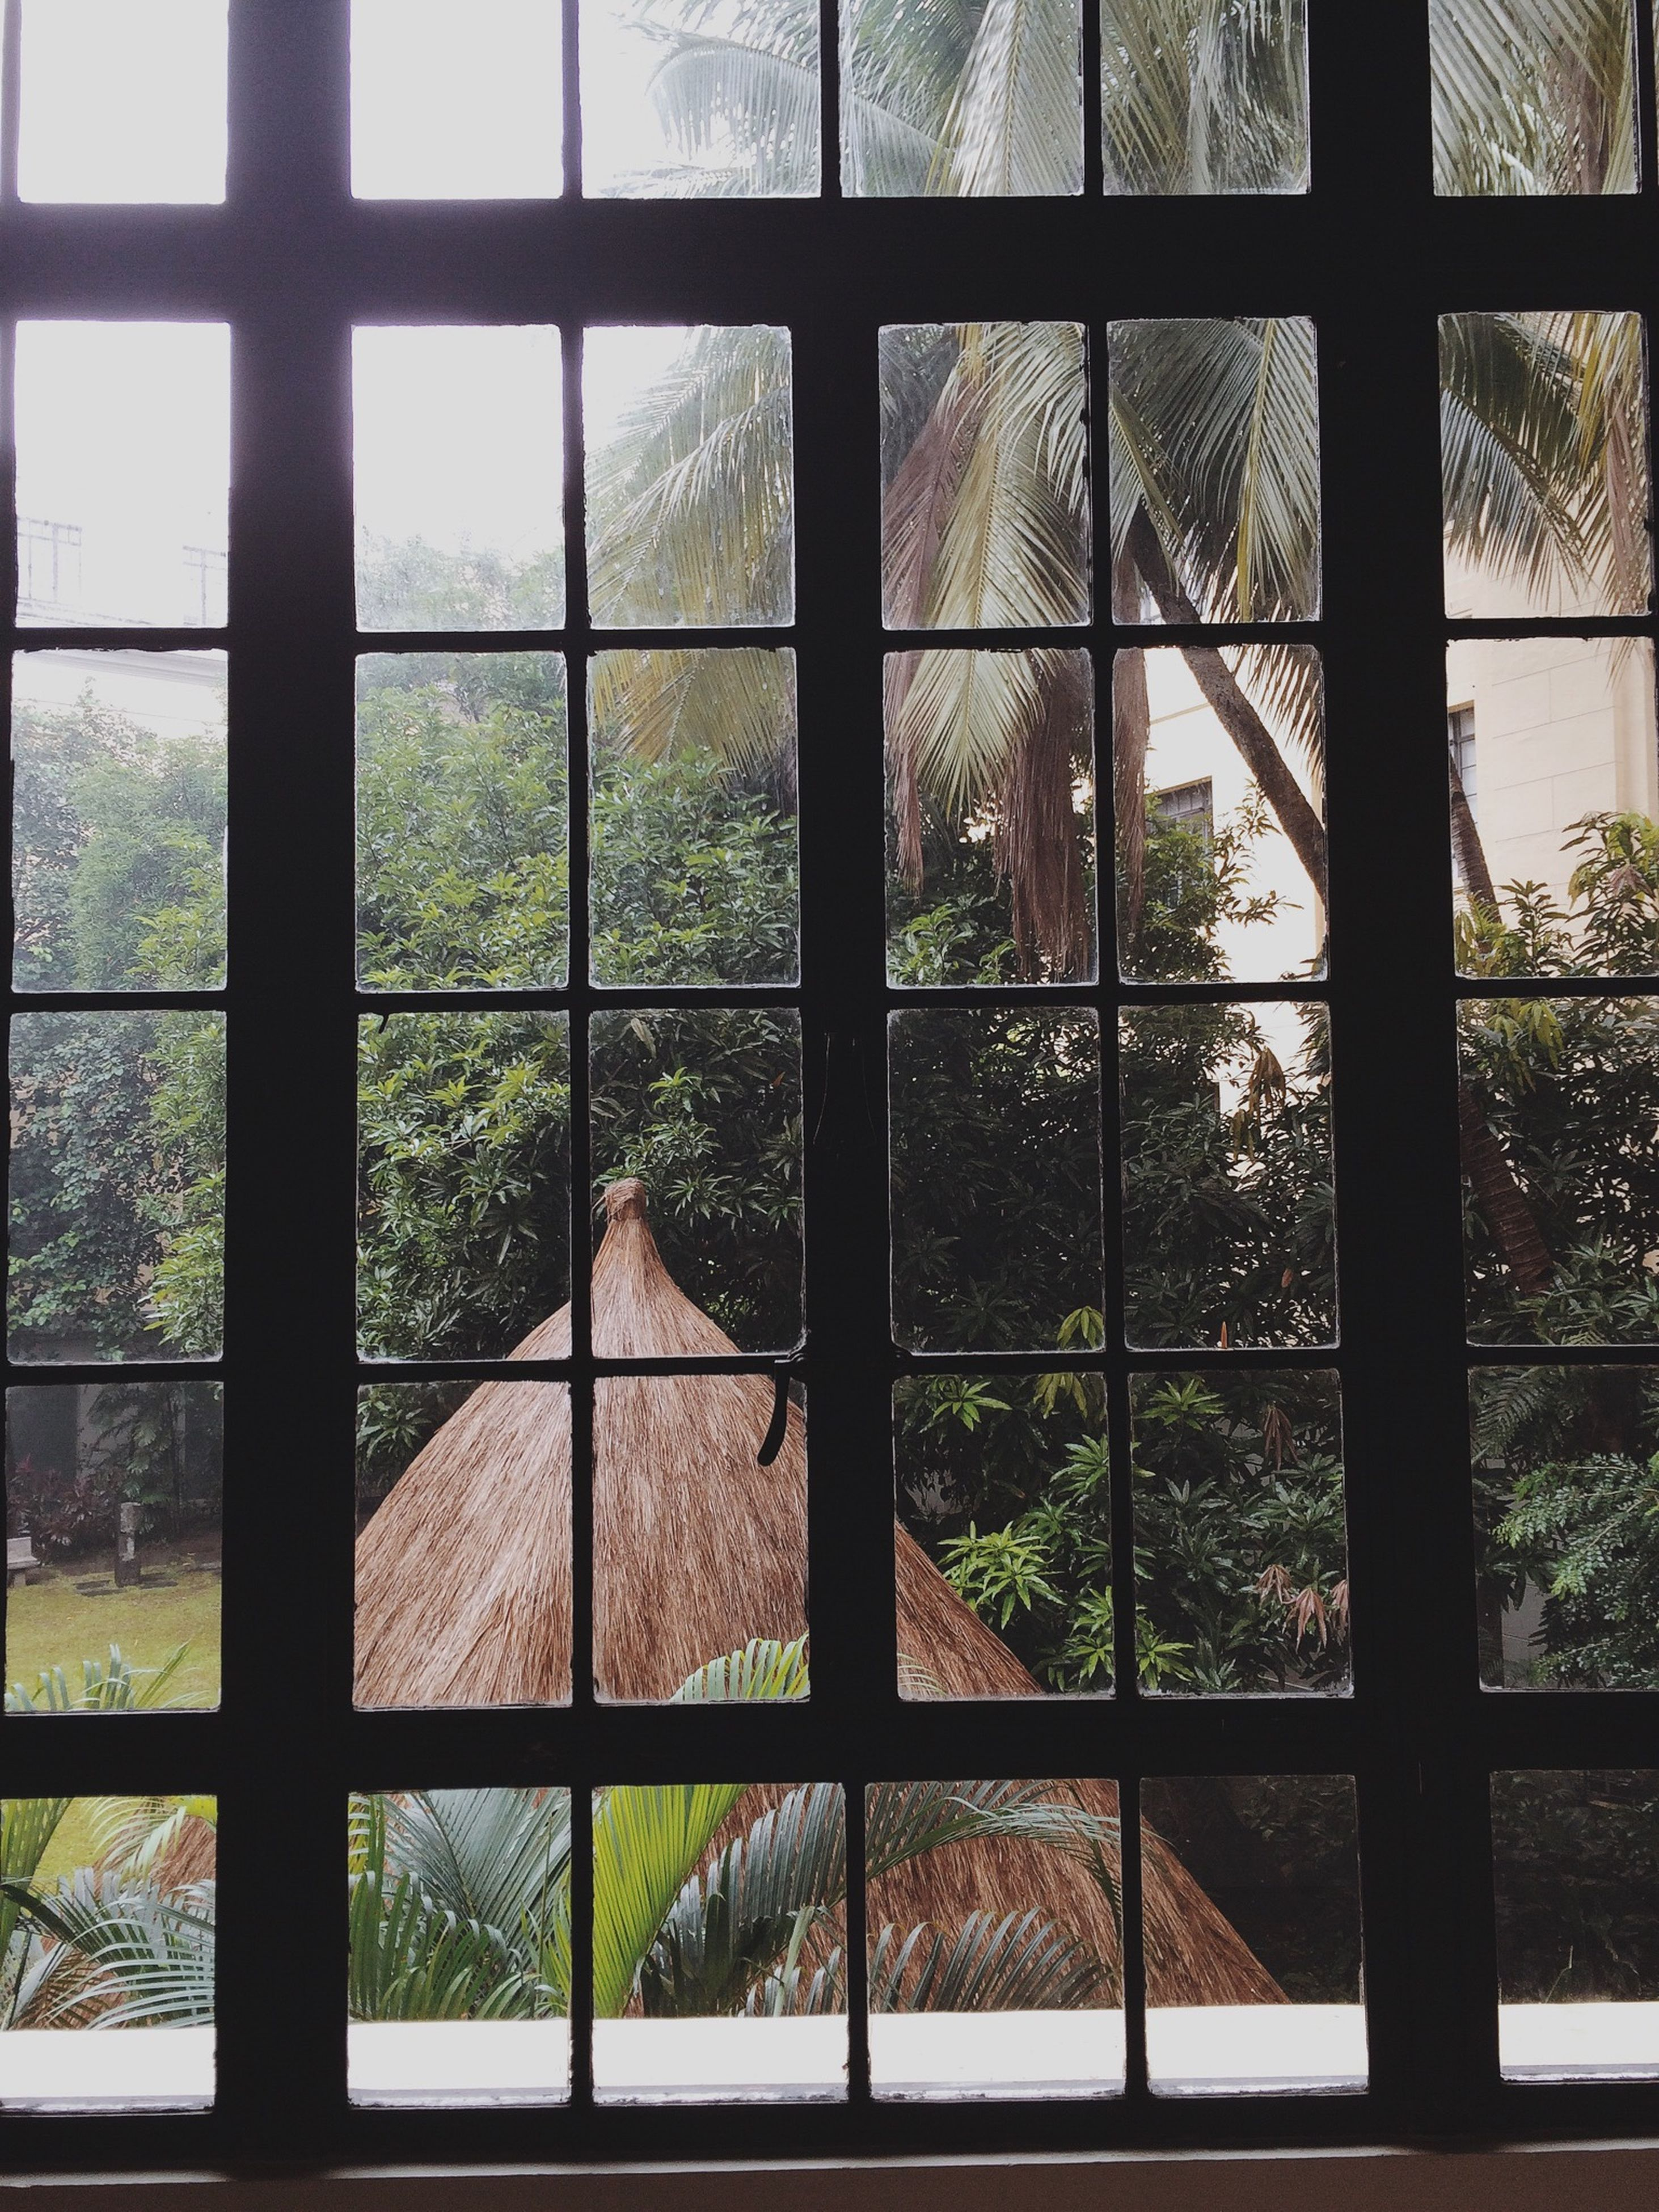 window, tree, fence, glass - material, architecture, indoors, transparent, built structure, metal, protection, building exterior, safety, day, house, pattern, no people, security, growth, field, sky